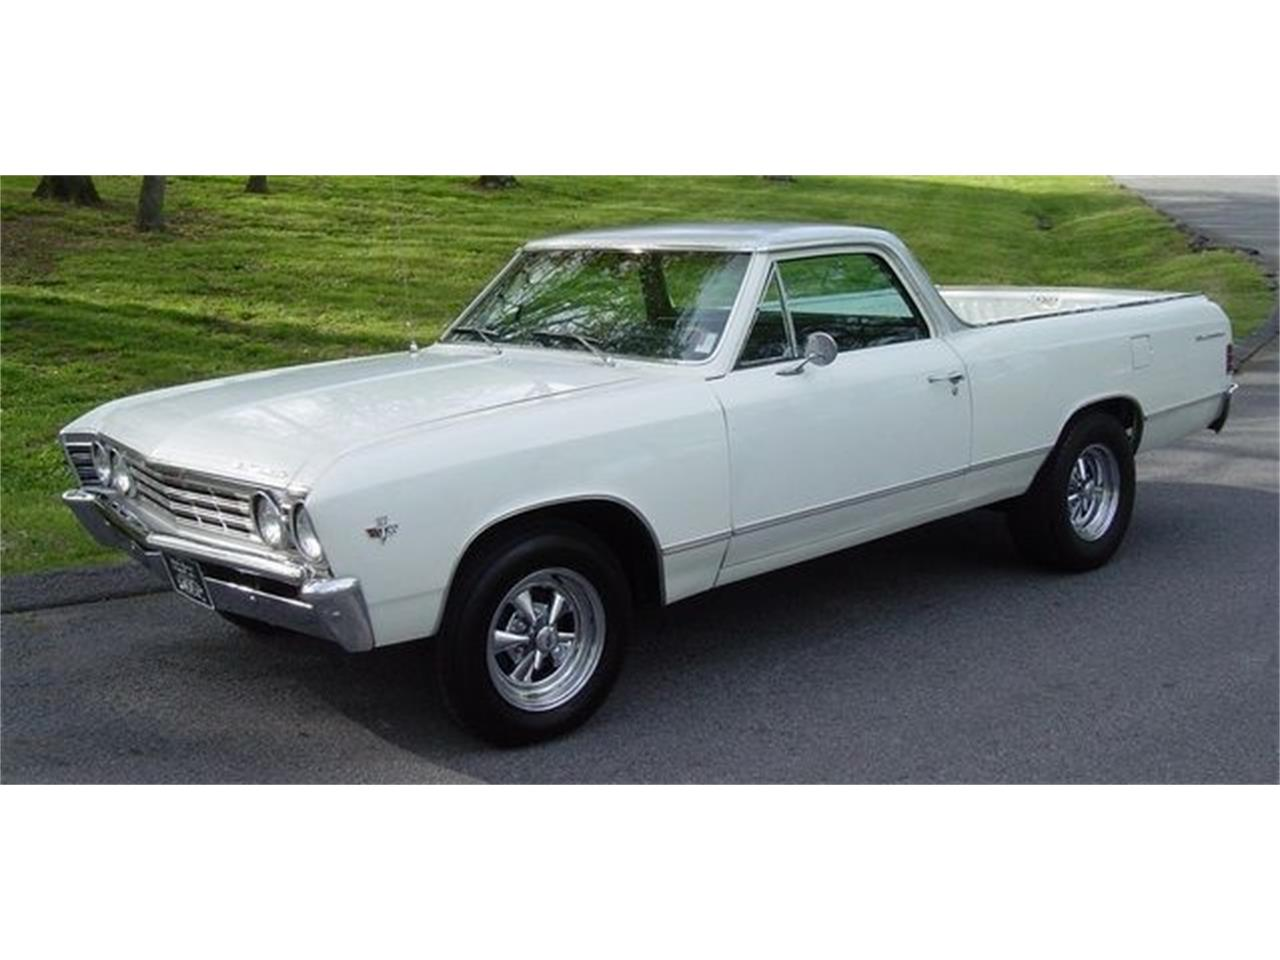 1967 Chevrolet El Camino (CC-1266042) for sale in Hendersonville, Tennessee